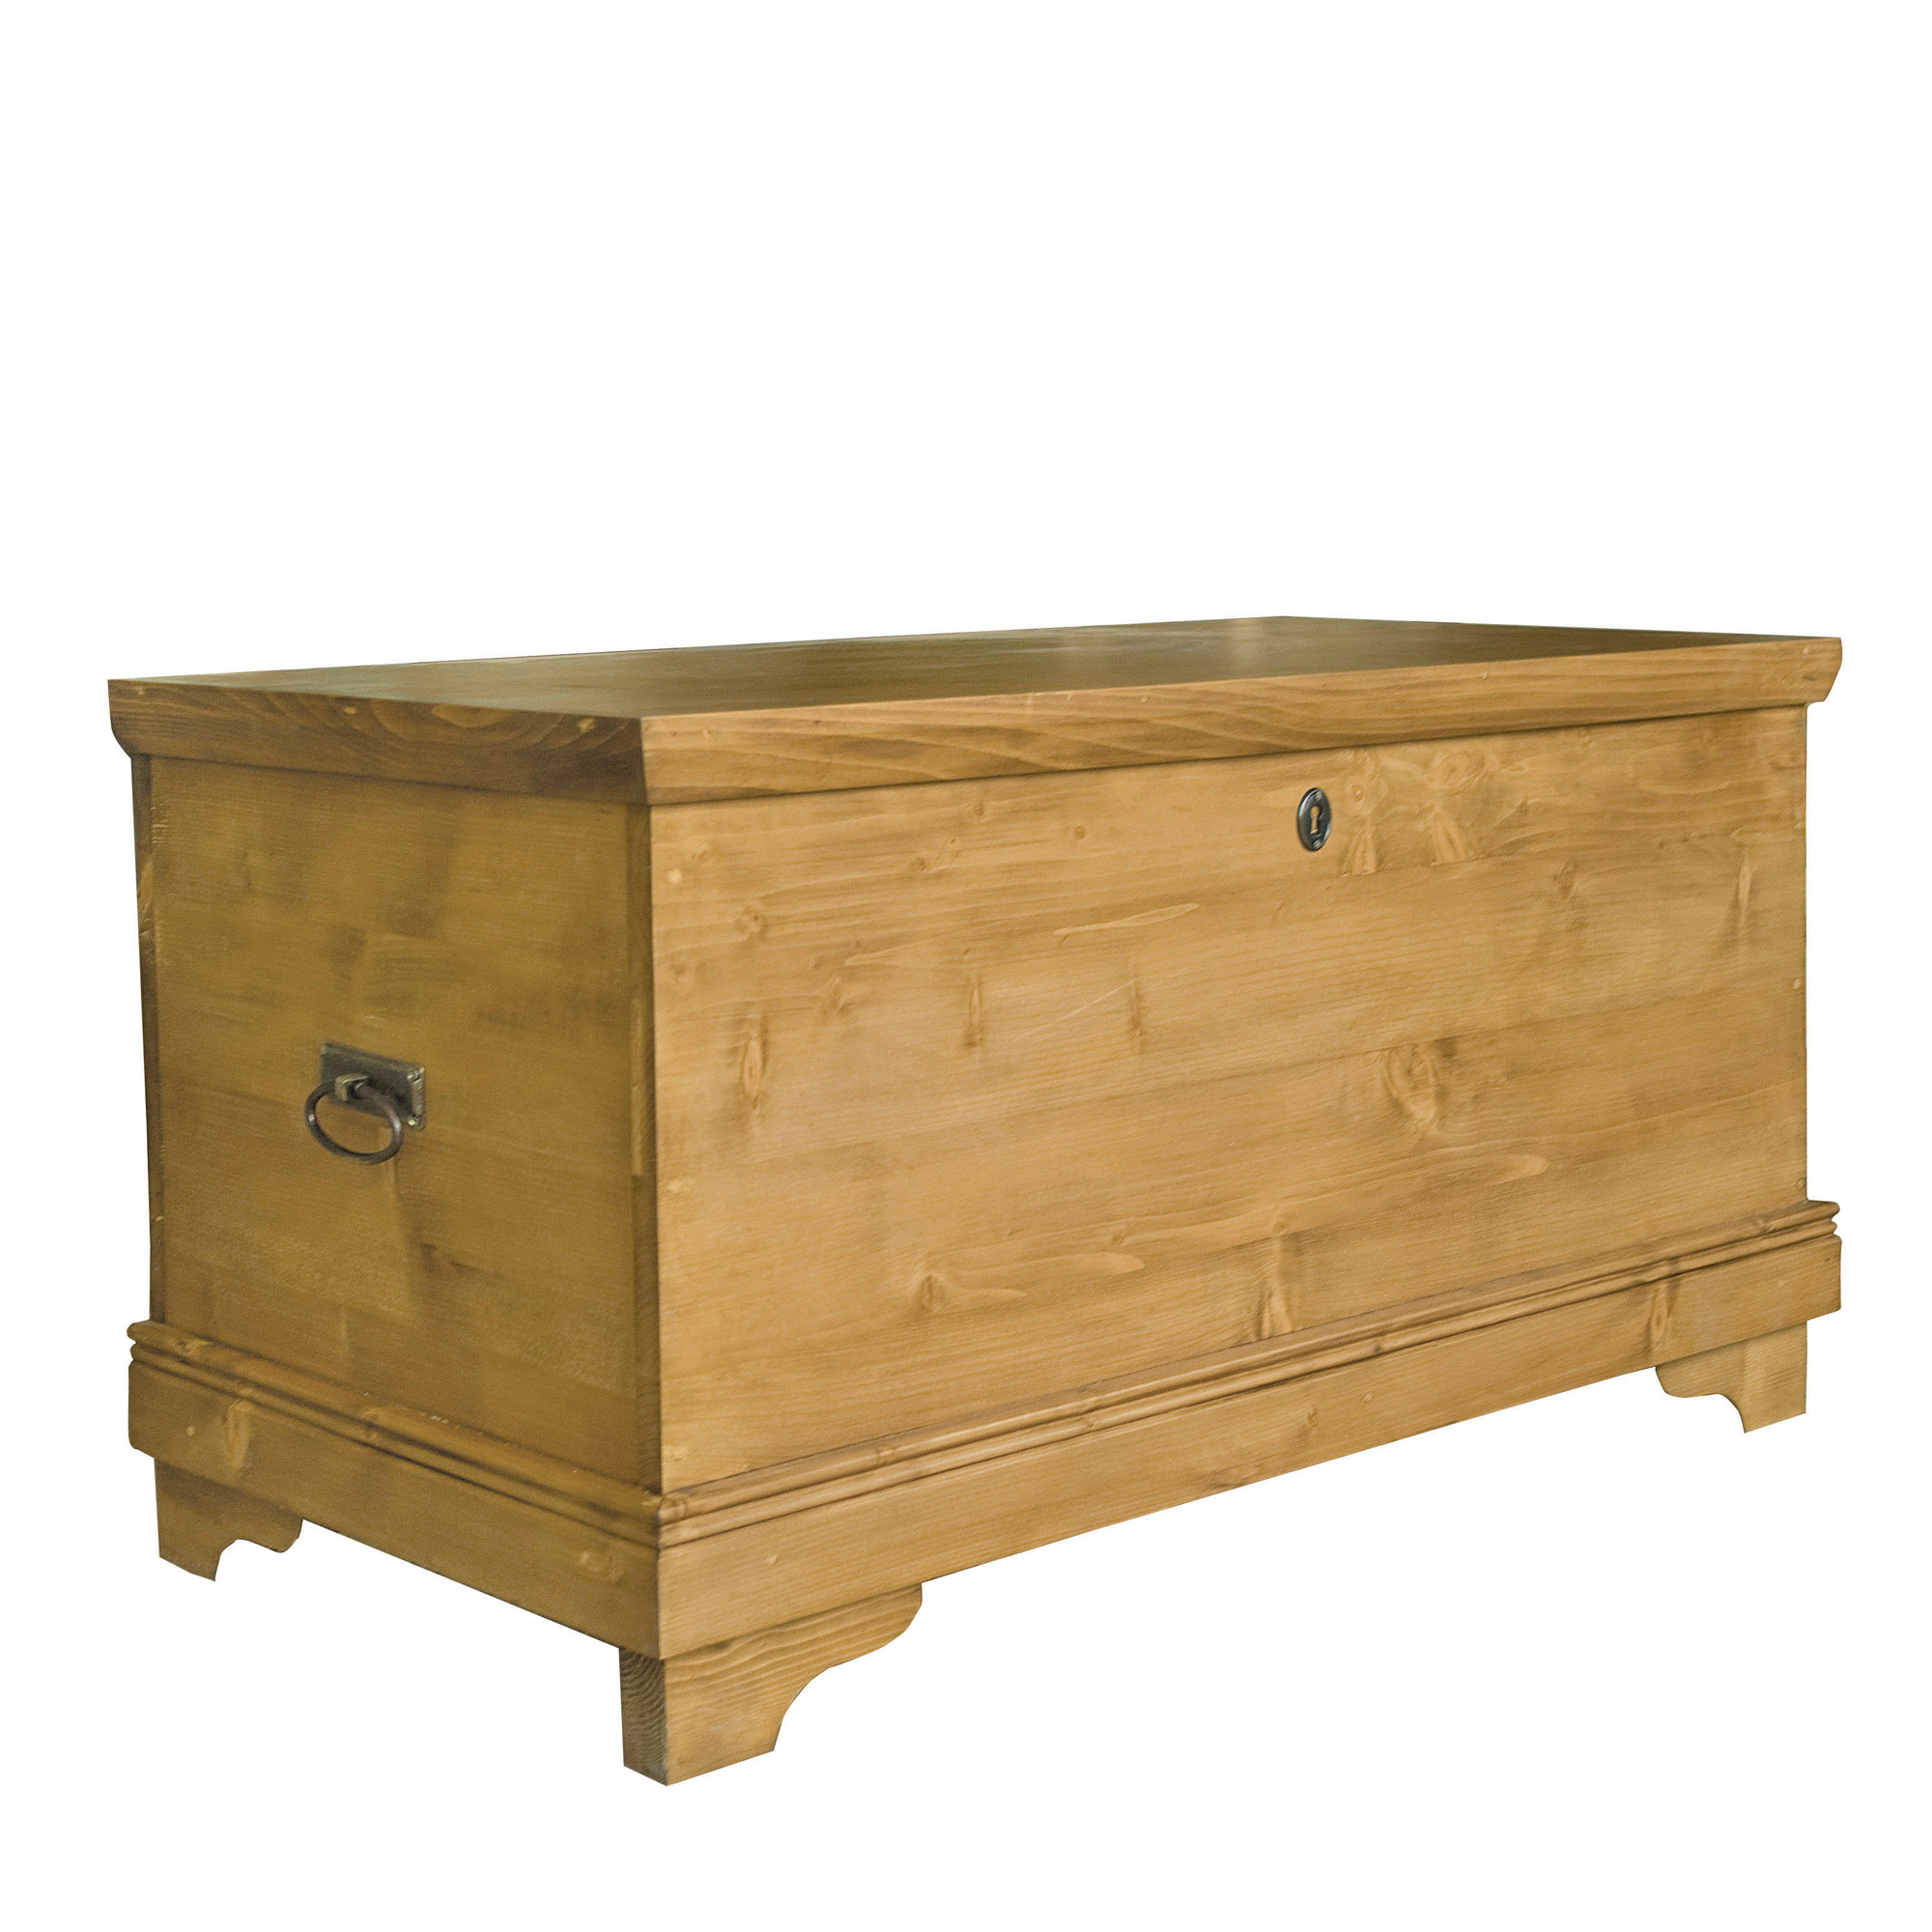 French Wooden Trunk